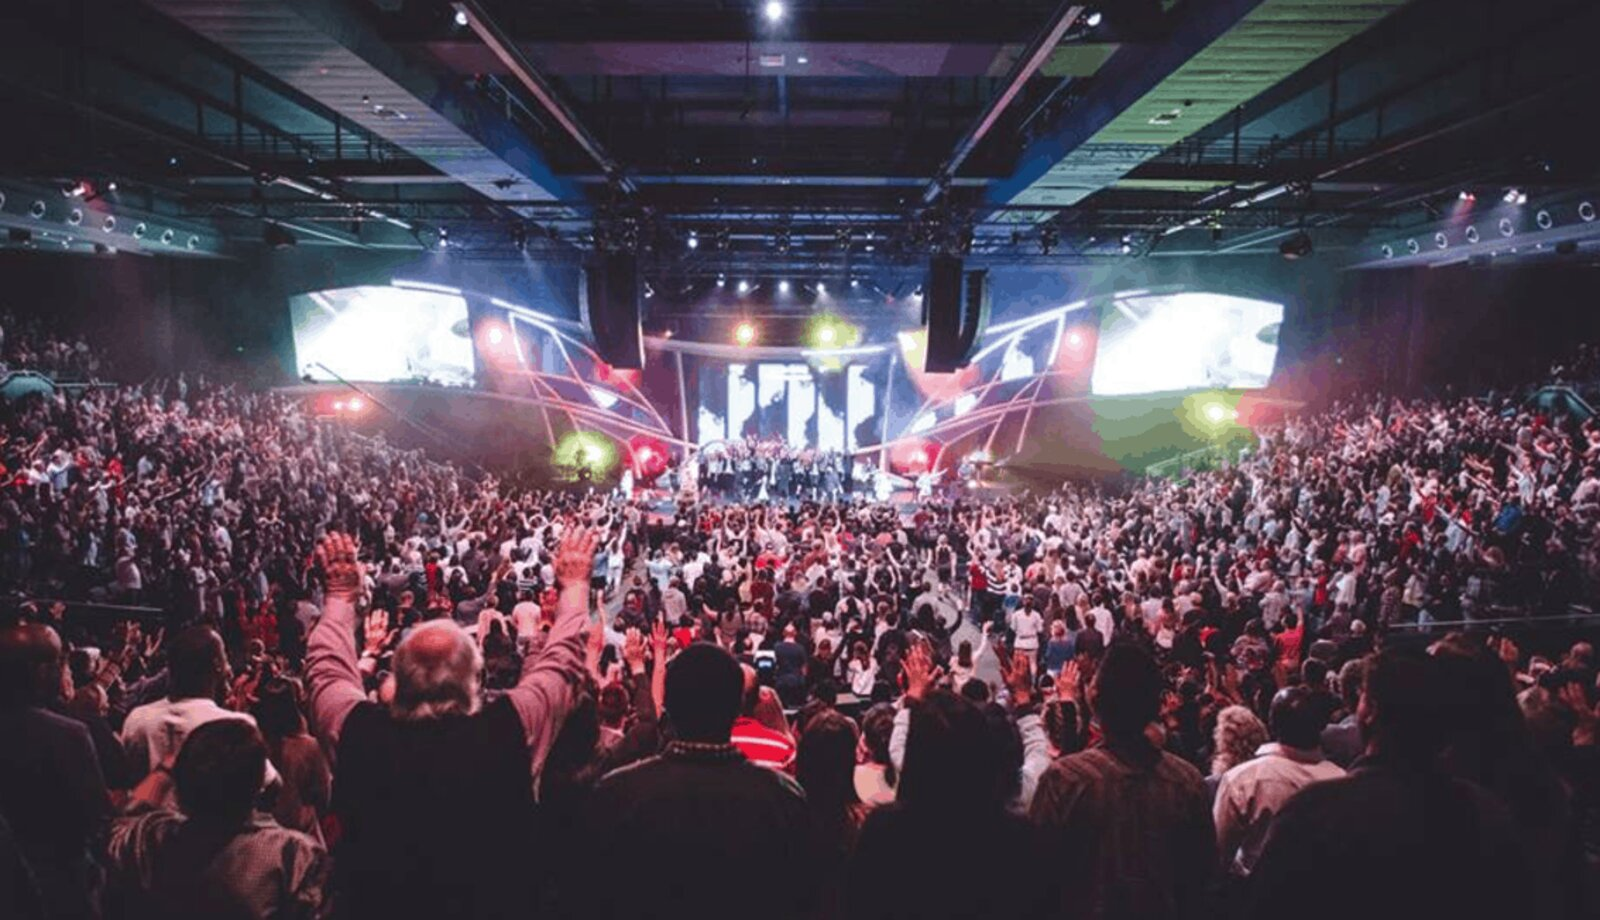 The allegations against Hillsong Church are drawing comparisons to MLM cult NXIVM. Read into what is occurring behind closed doors at Hillsong.